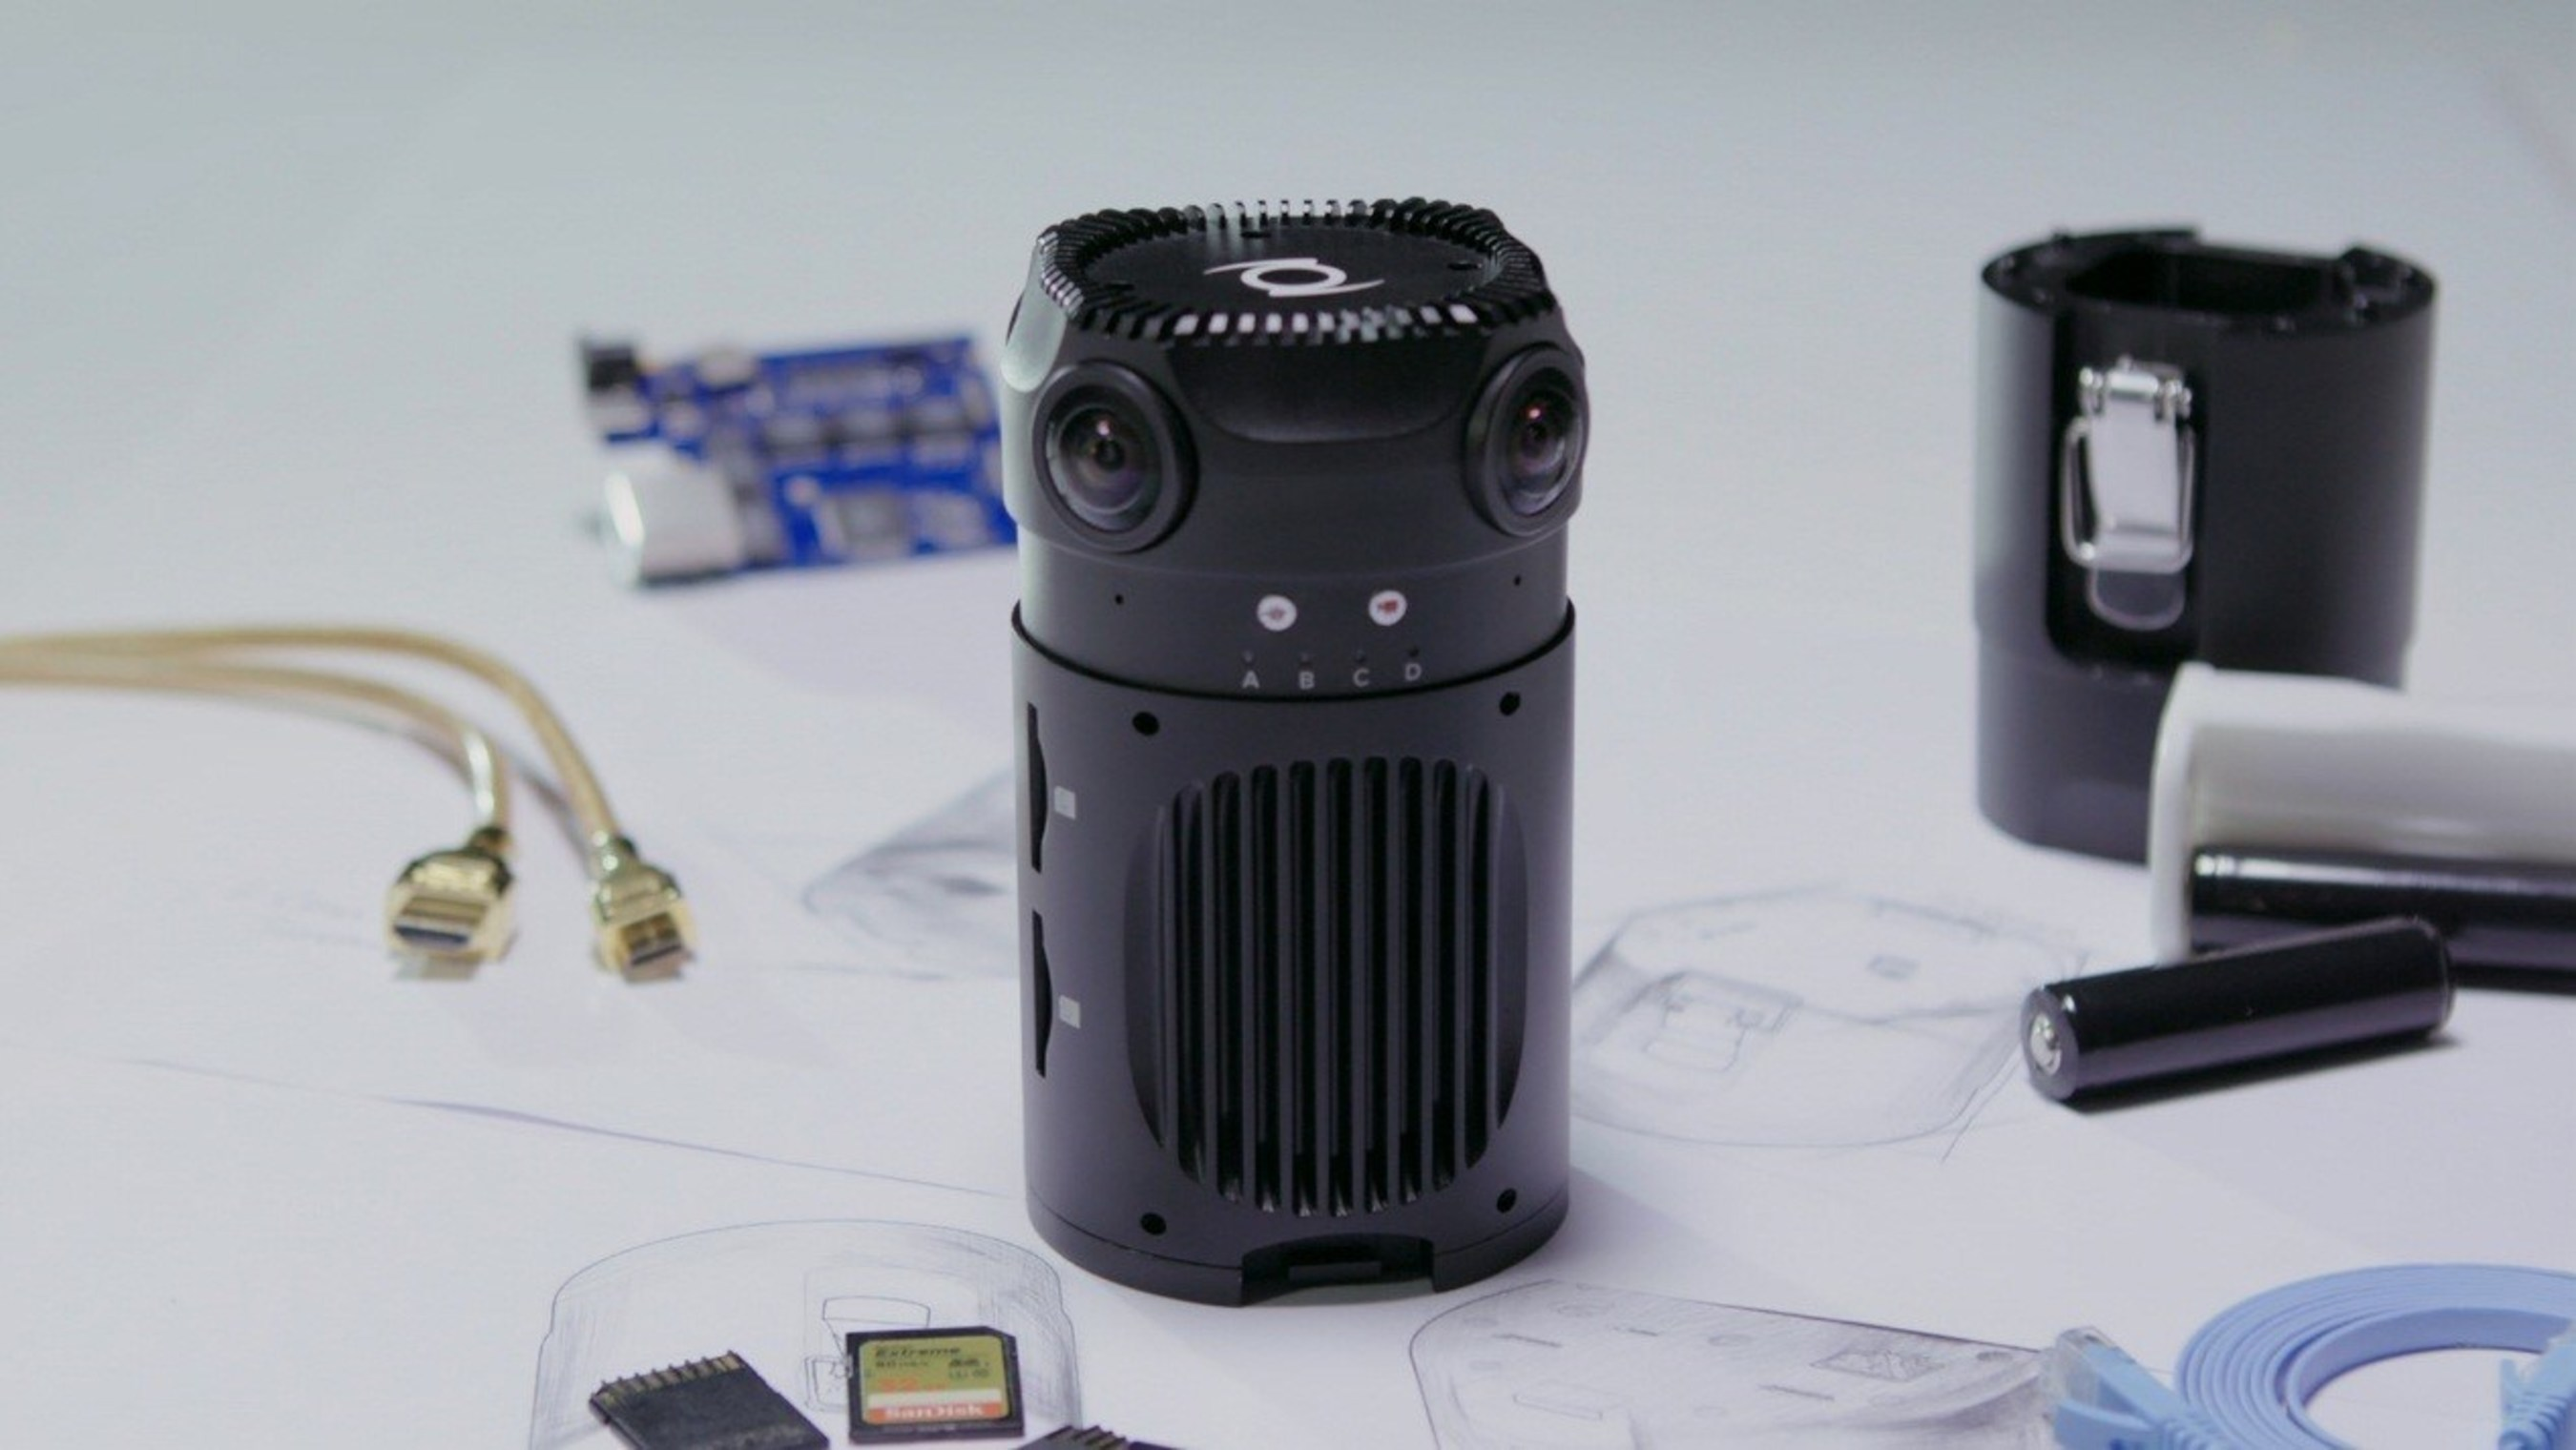 Z CAM S1 - Professional VR Camera Designed for VR Content Creators and Professional Users